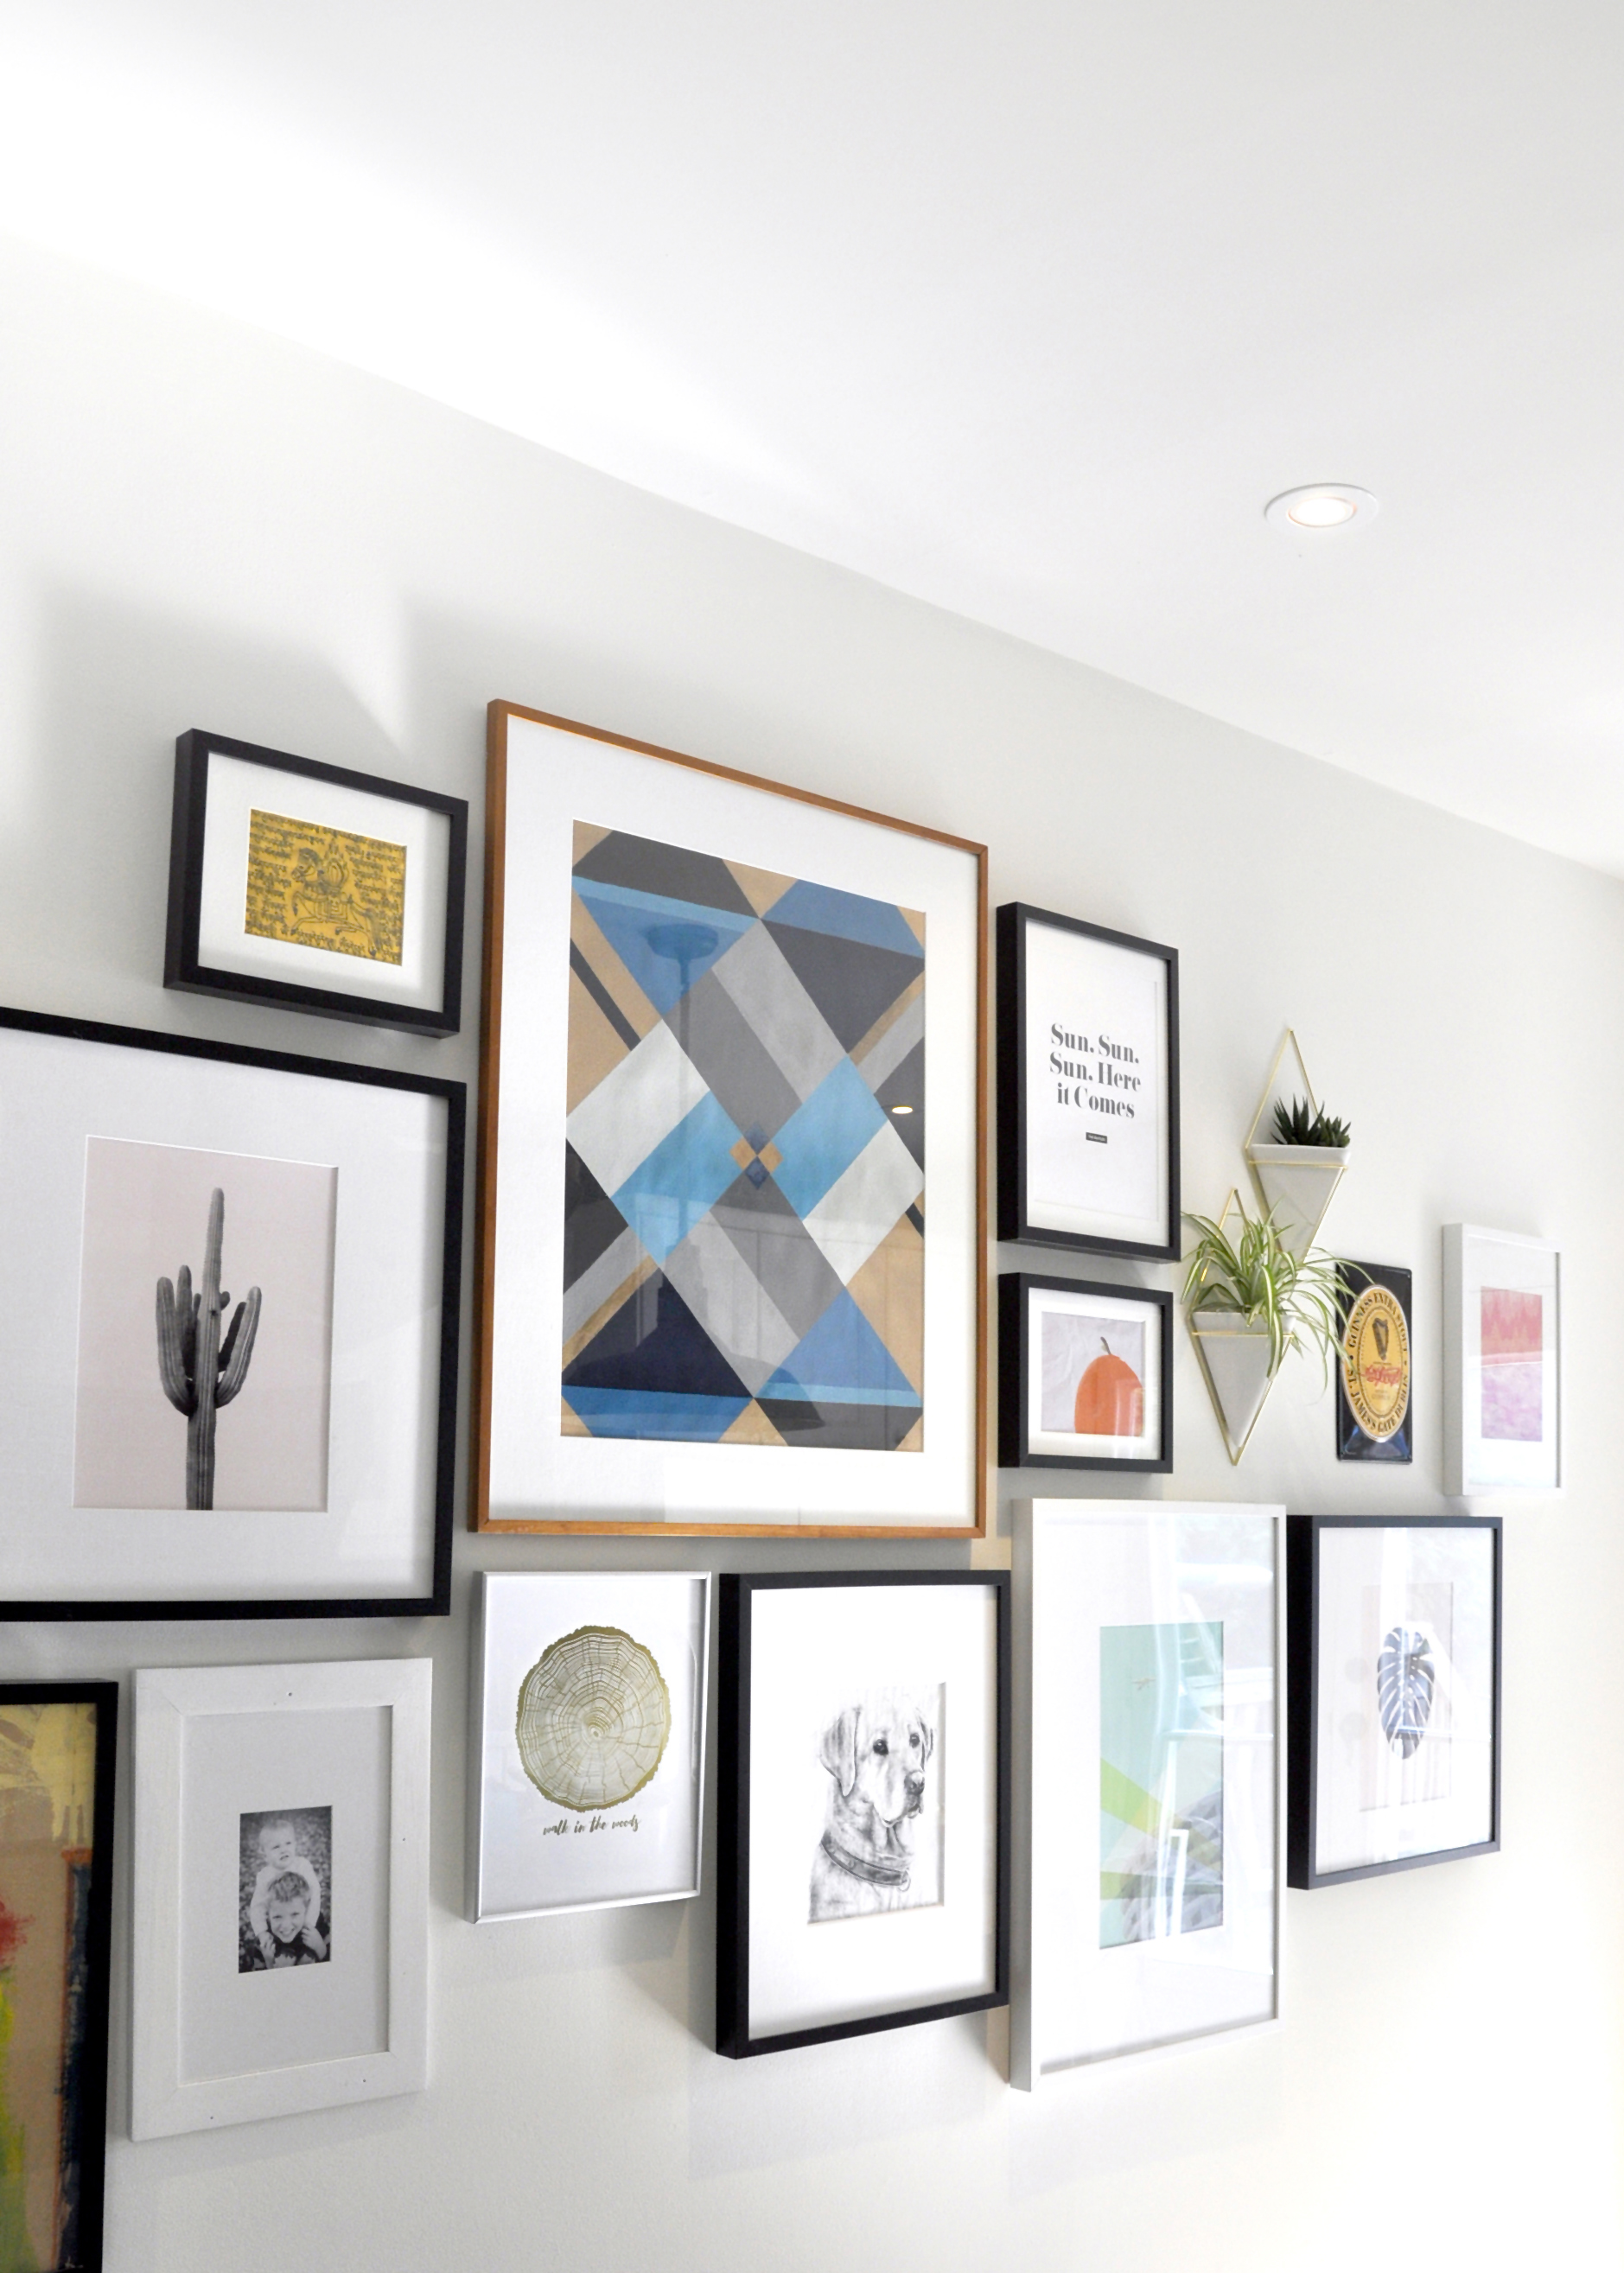 Gallery wall styling by Julie Taylor Interiors. Photography by Swell Made Co.